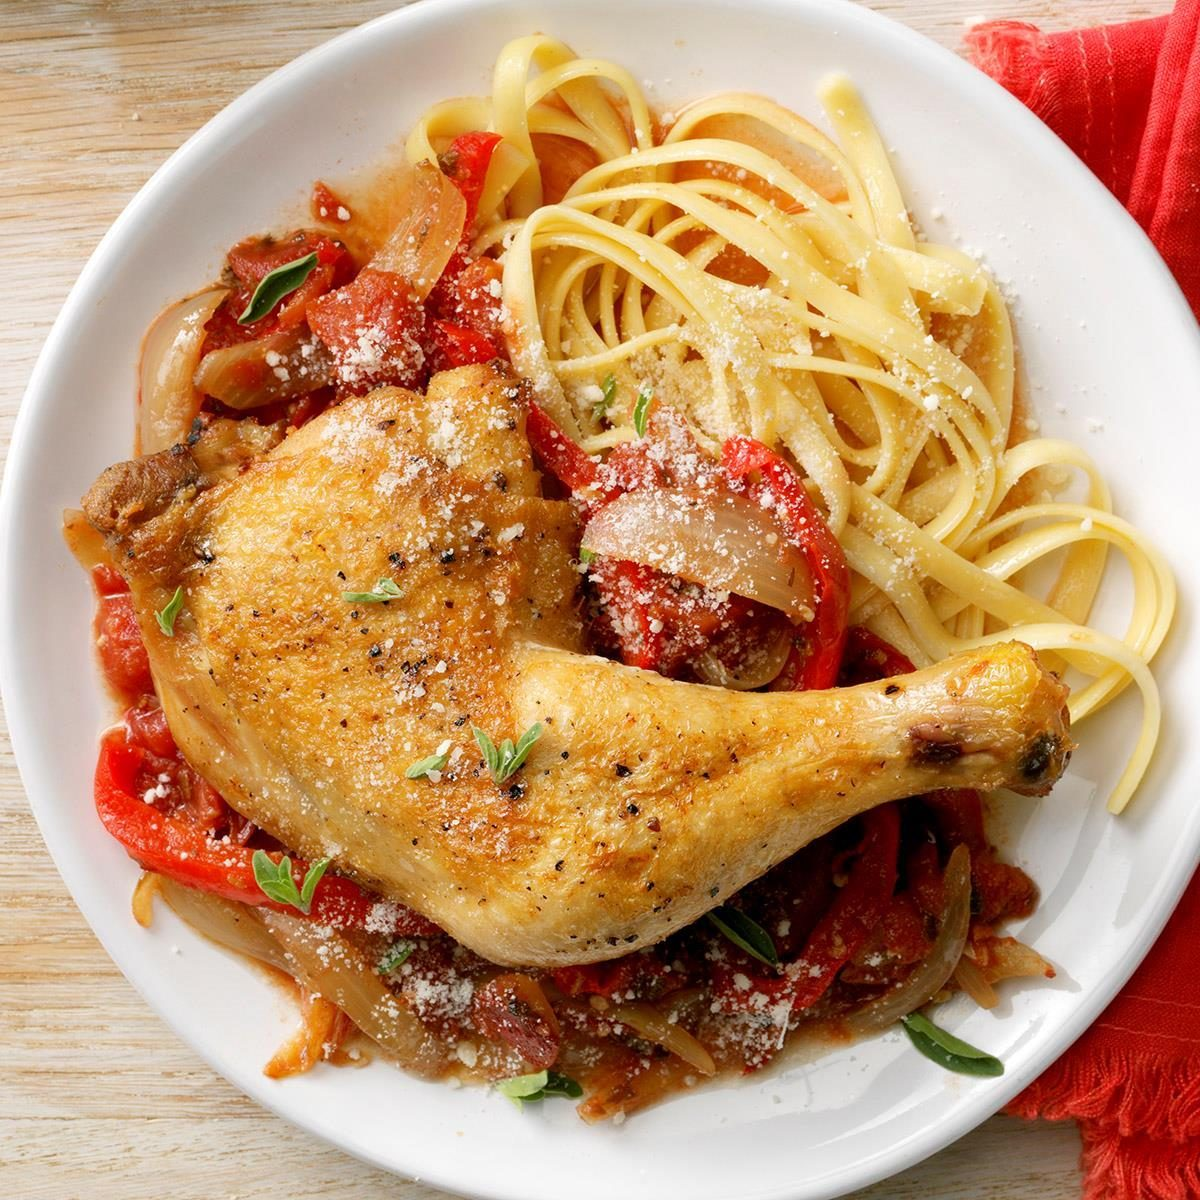 Day 4: Weekday Chicken Cacciatore